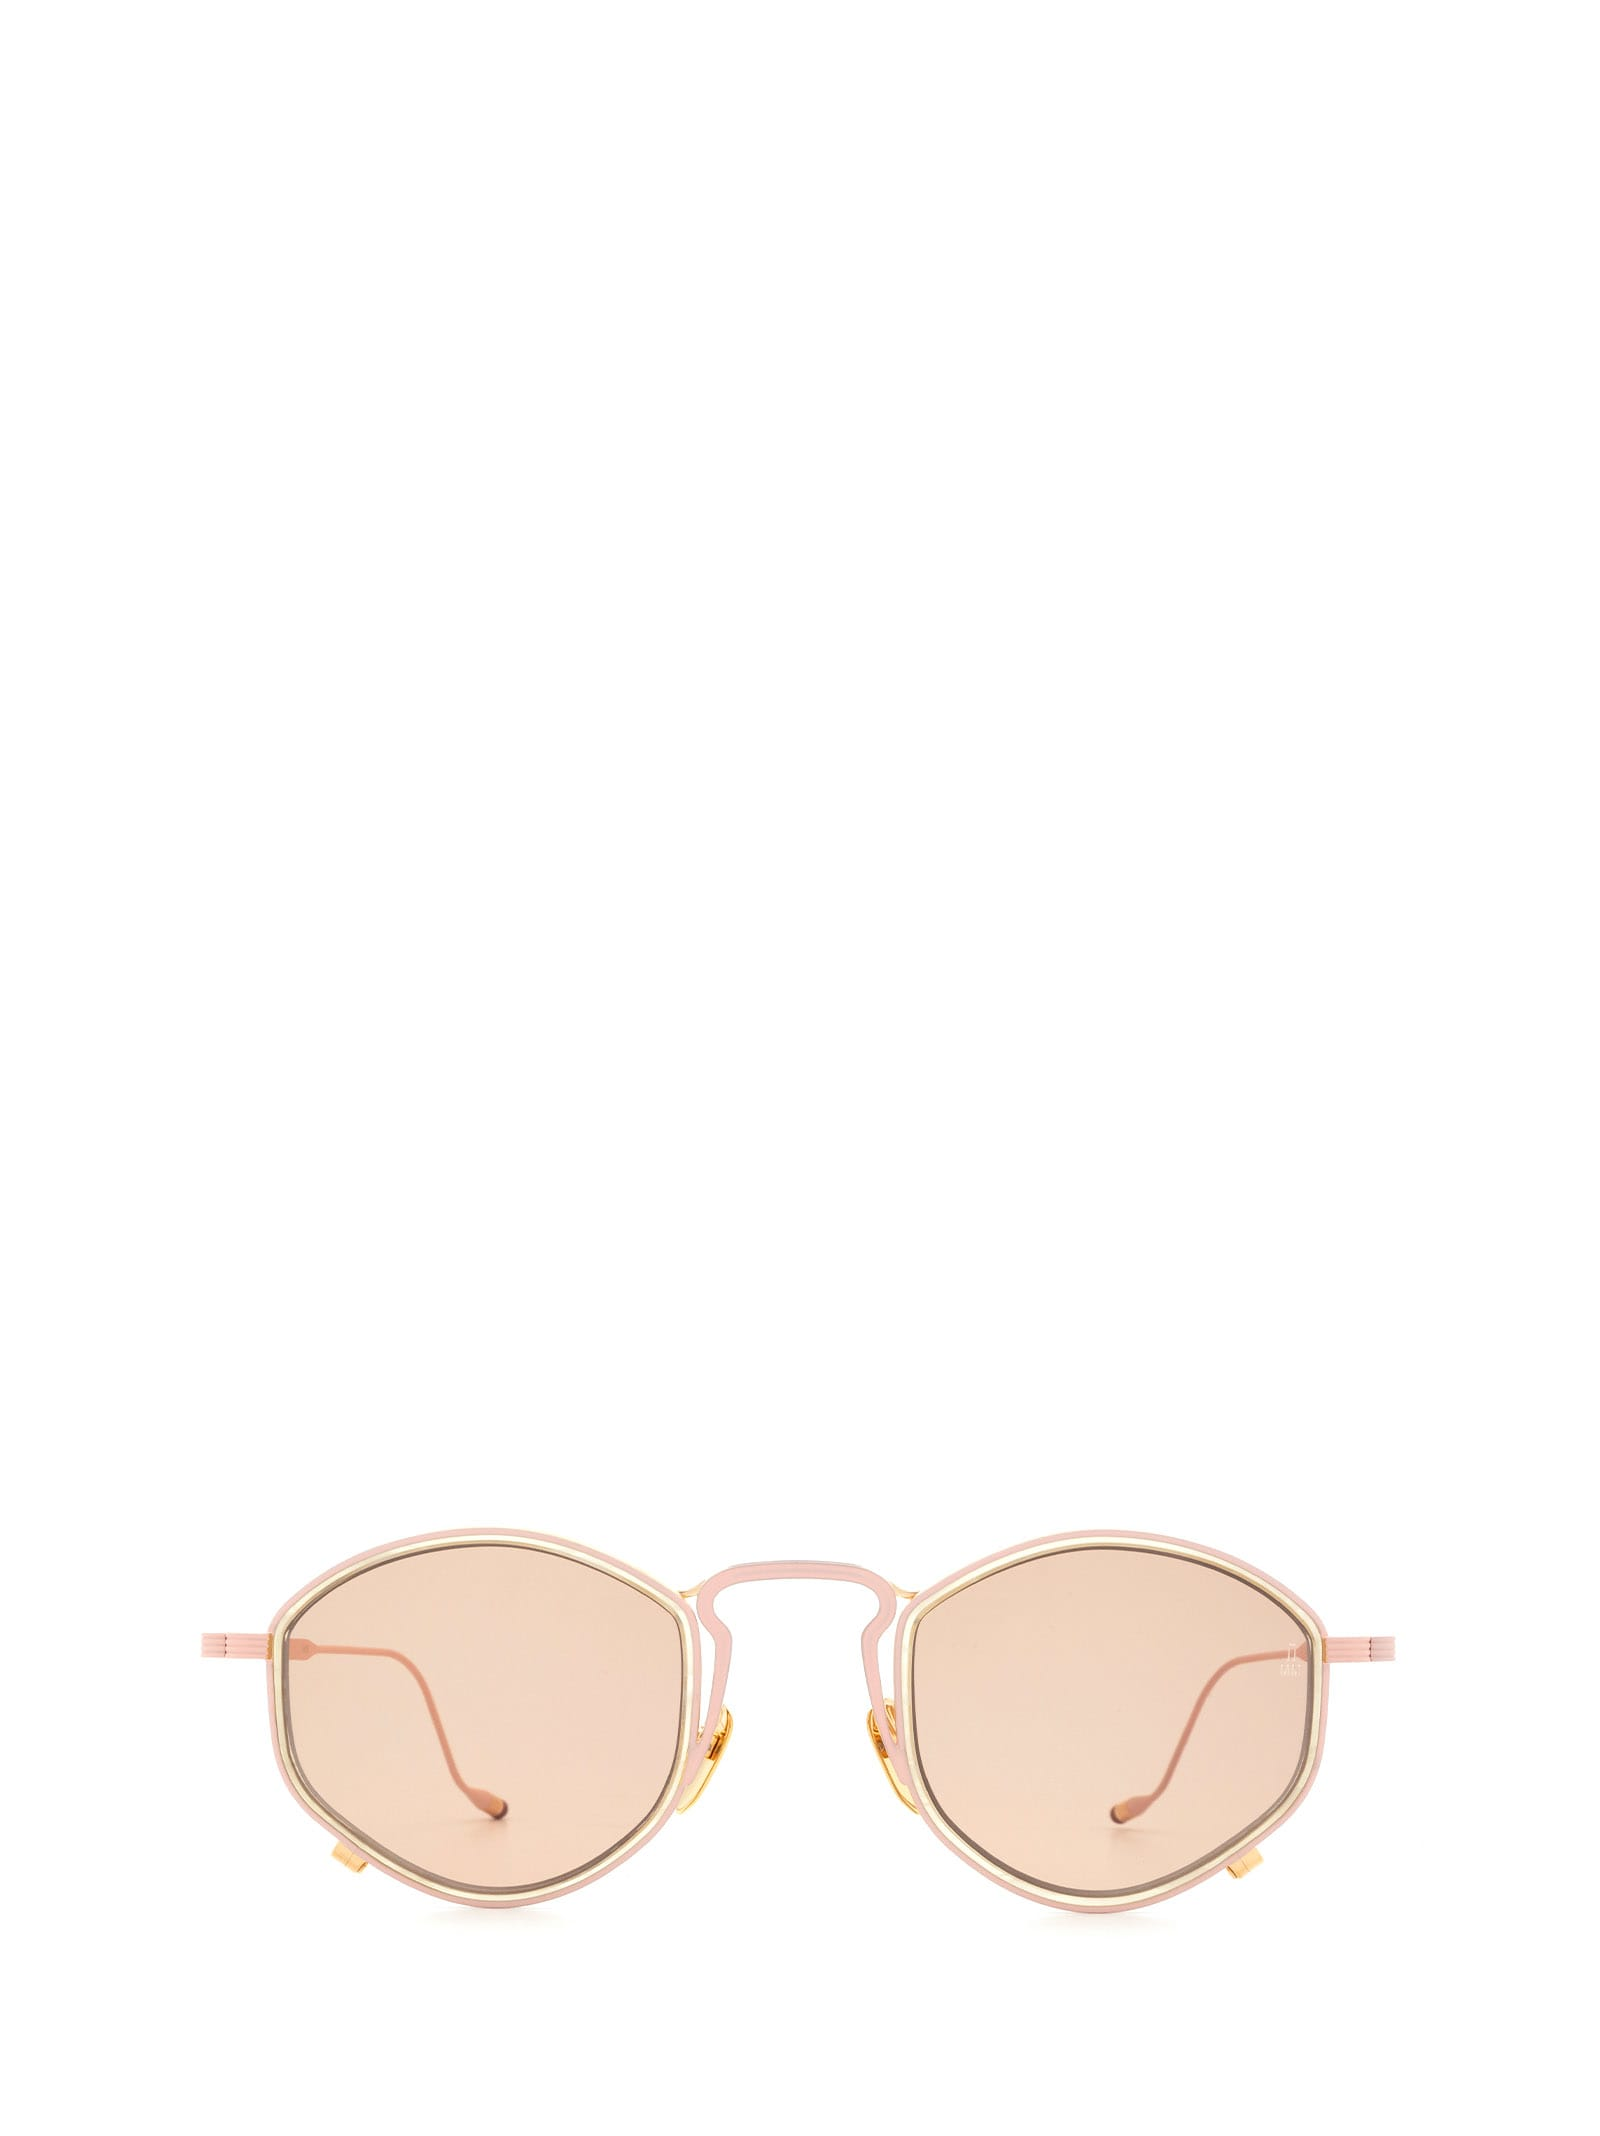 Jacques Marie Mage Jacques Marie Mage Aragon Amaranth / Light Pink Sunglasses